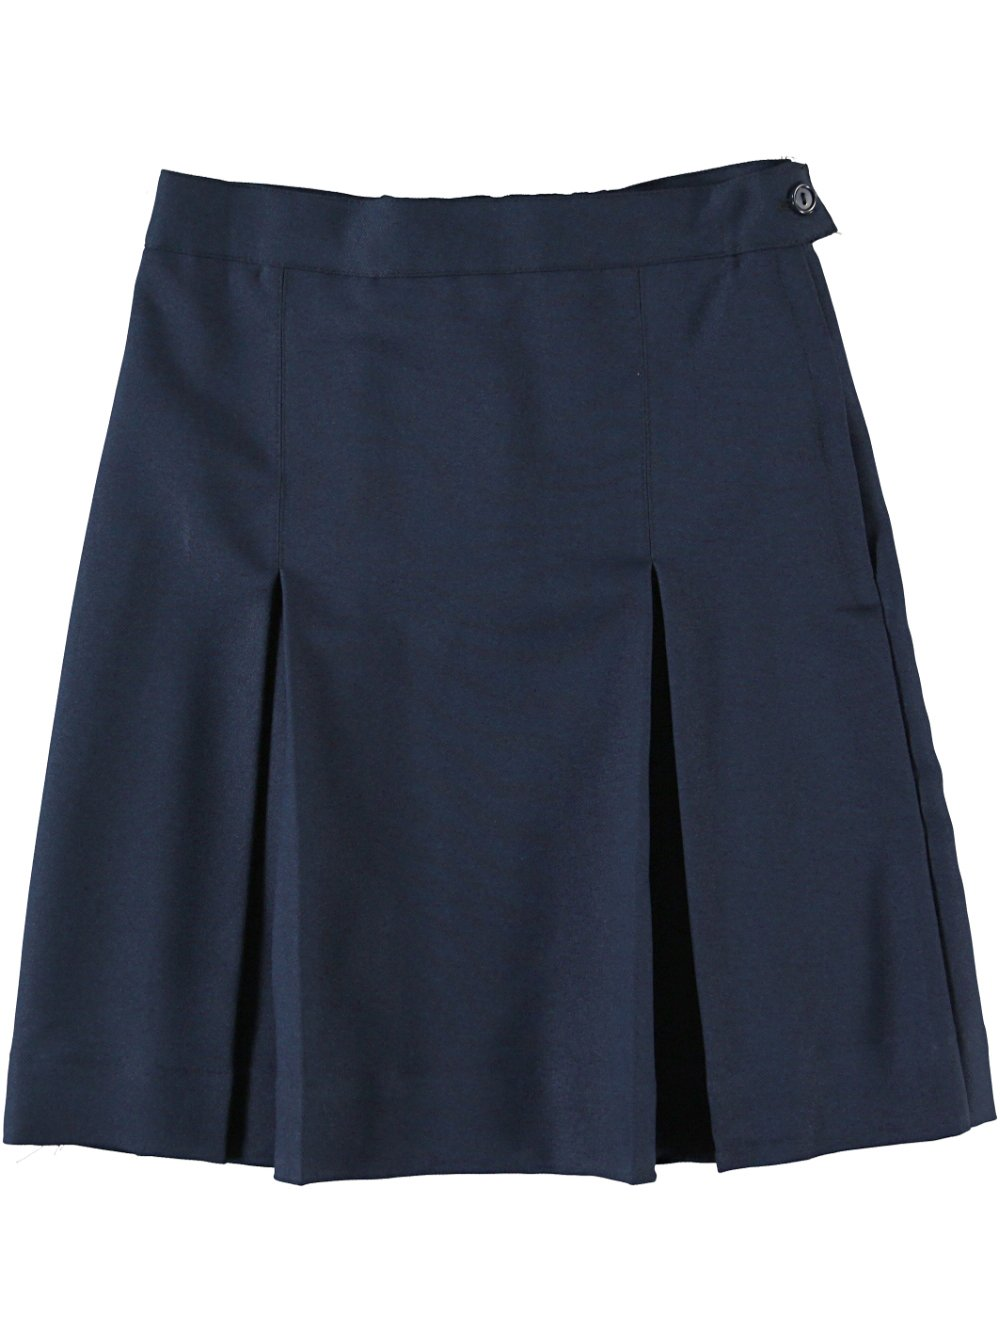 Bee Jays Special Order Cookie's Brand Box Pleat Skirt - Navy, 6X + 4''